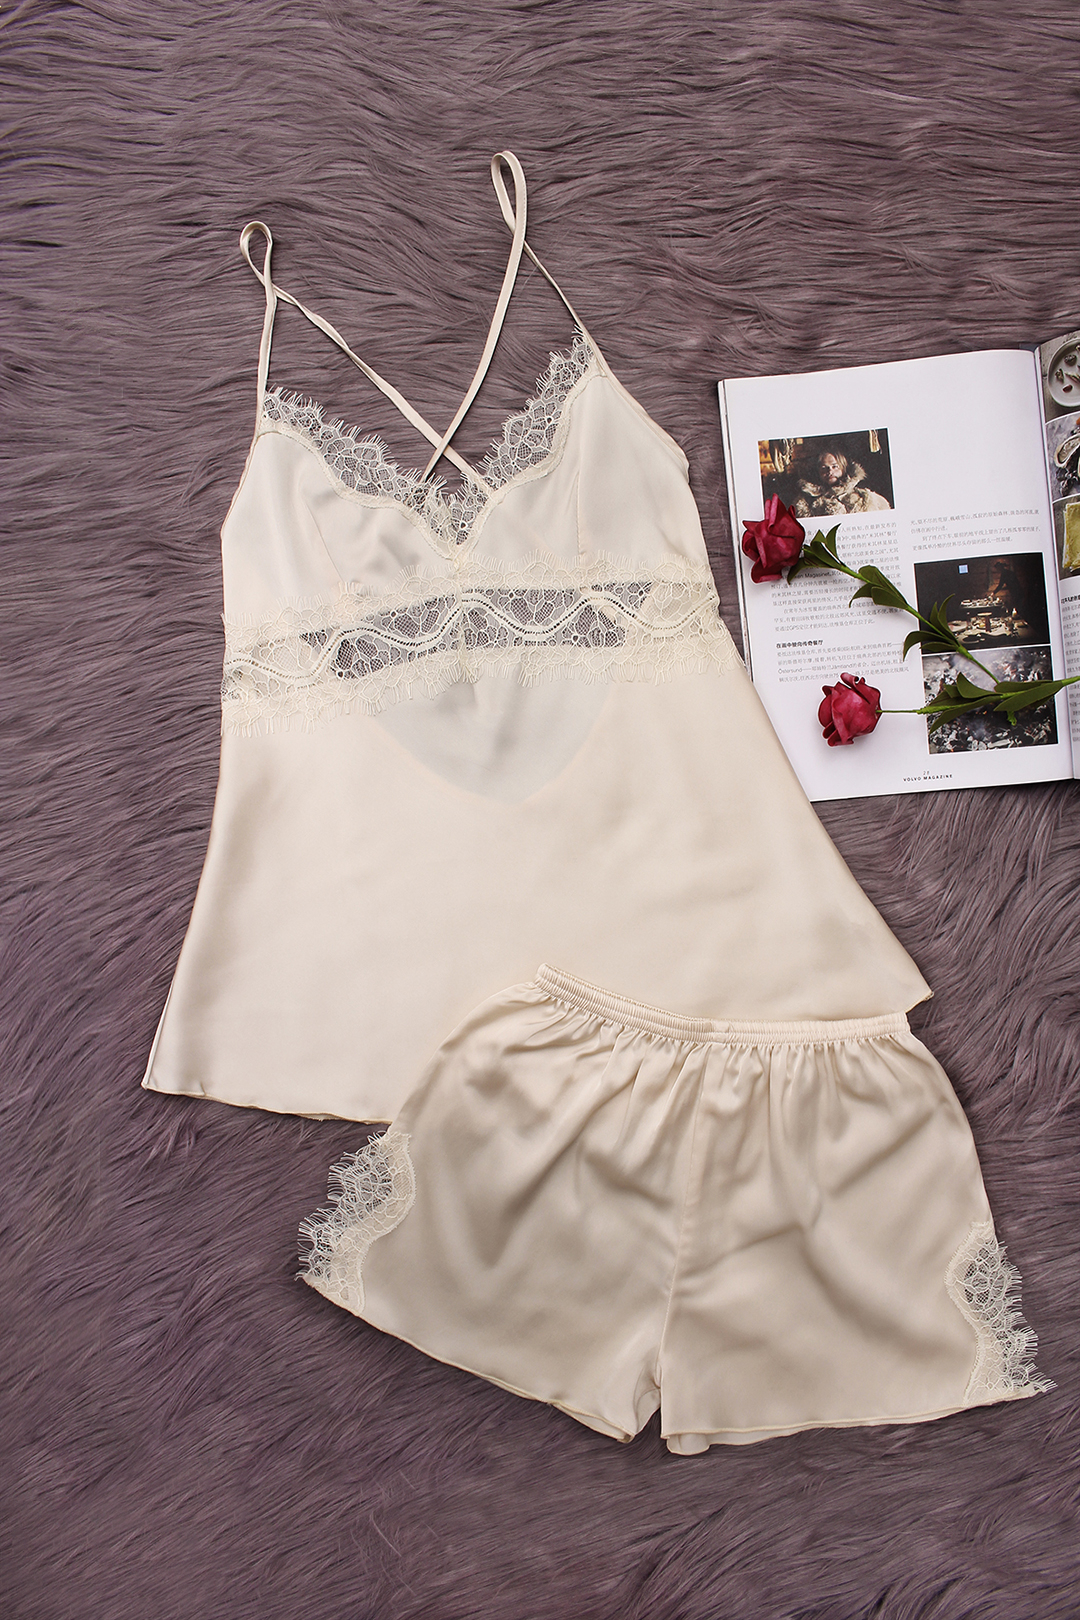 Apricot Hollow Out Lace detail V-neck Crossed Slip Pajamas sense and sensibility